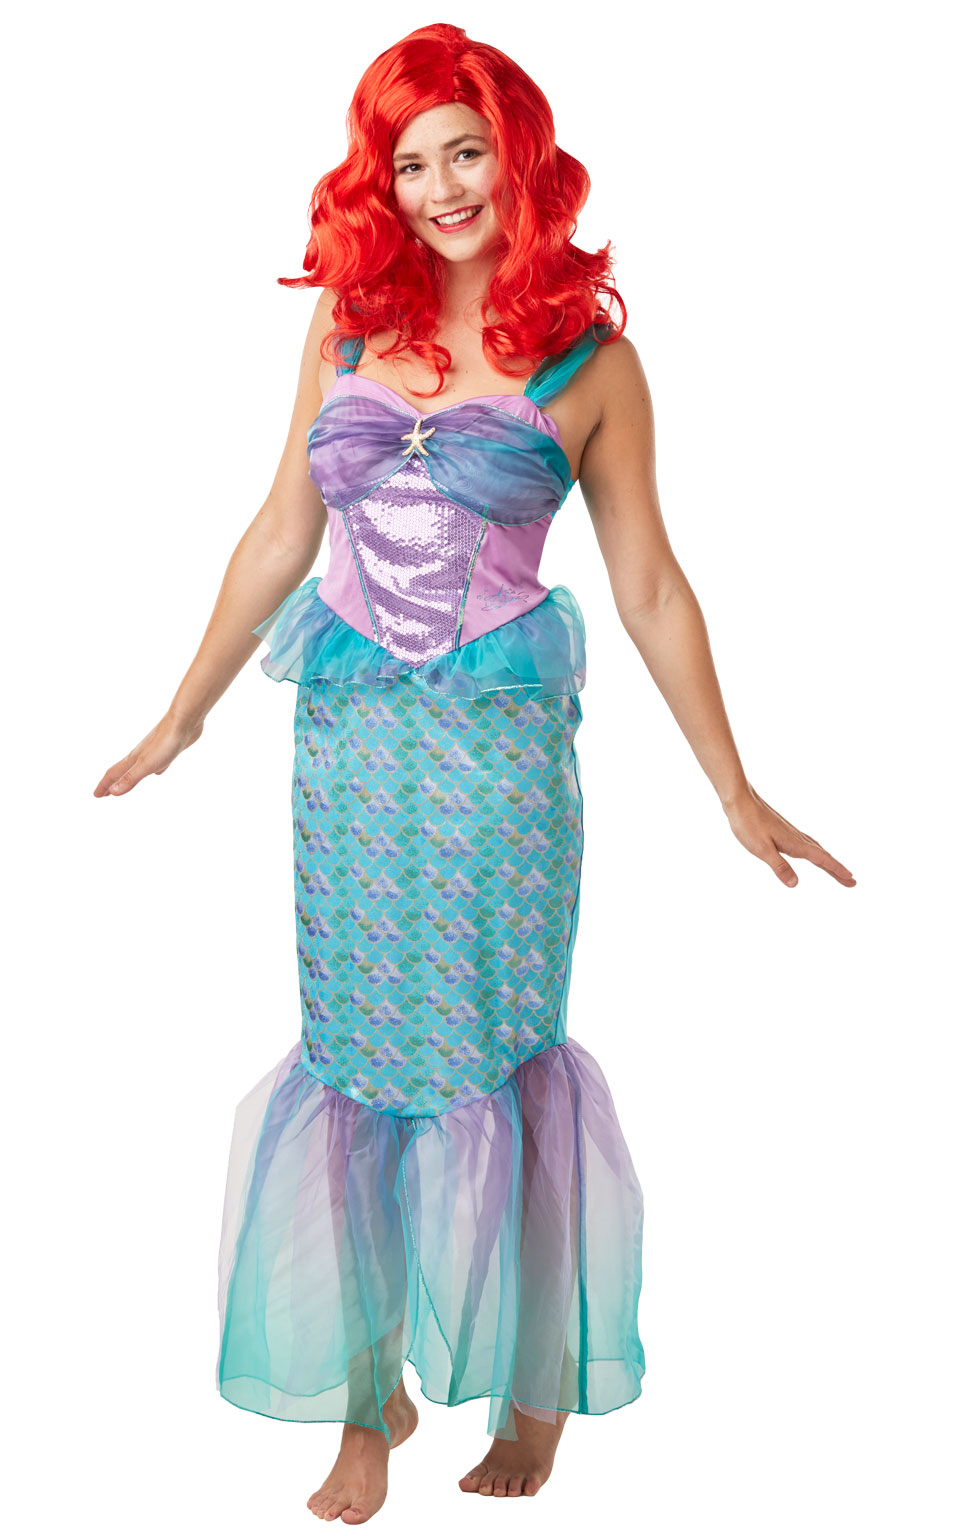 Sentinel Princess Ariel Ladies Fancy Dress Disney Little Mermaid Fairytale Womens Costume  sc 1 st  eBay & Princess Ariel Ladies Fancy Dress Disney Little Mermaid Fairytale ...